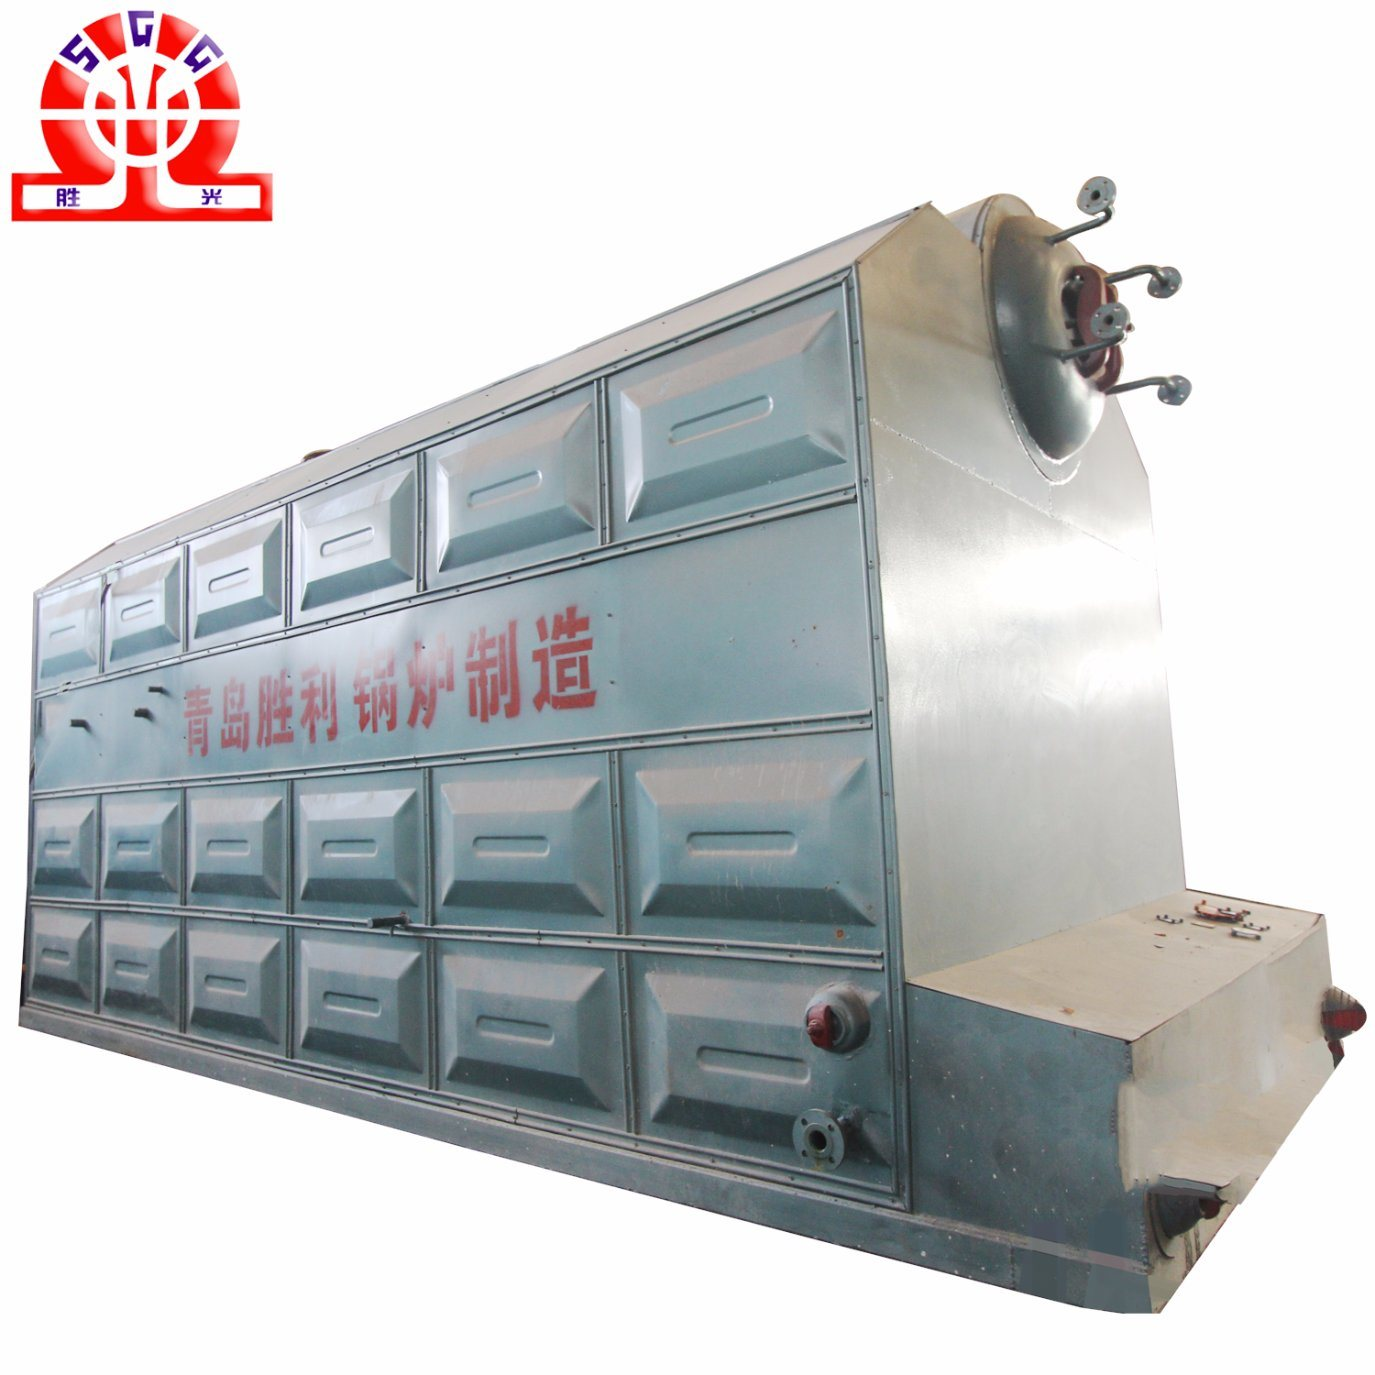 China Rice Husk and Coal Steam Boiler Manufacturer - China Steam ...